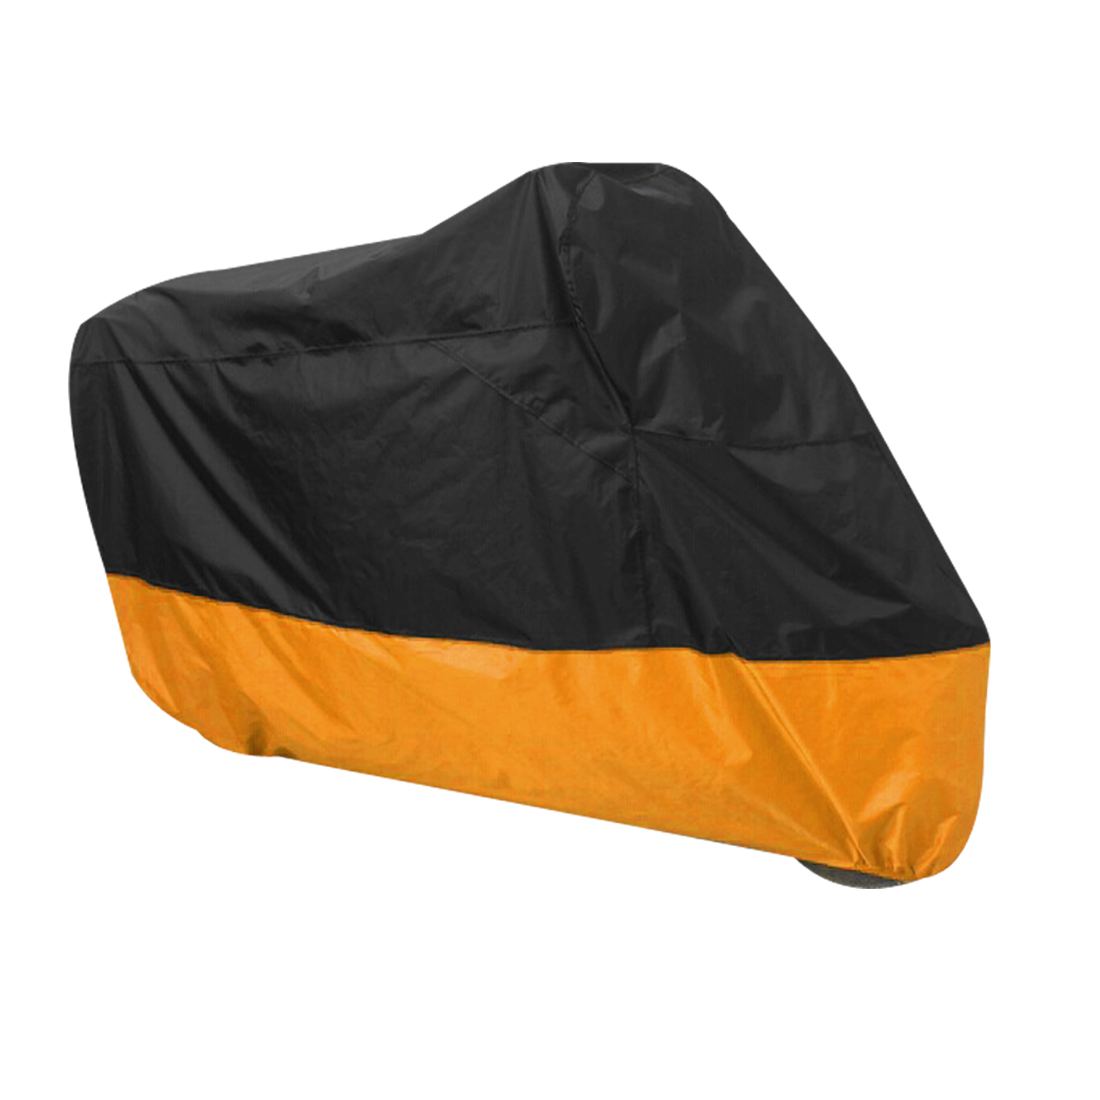 Motorcycle Motorbike Rain Dust Resistant Waterproof Cover Protector Black Orange